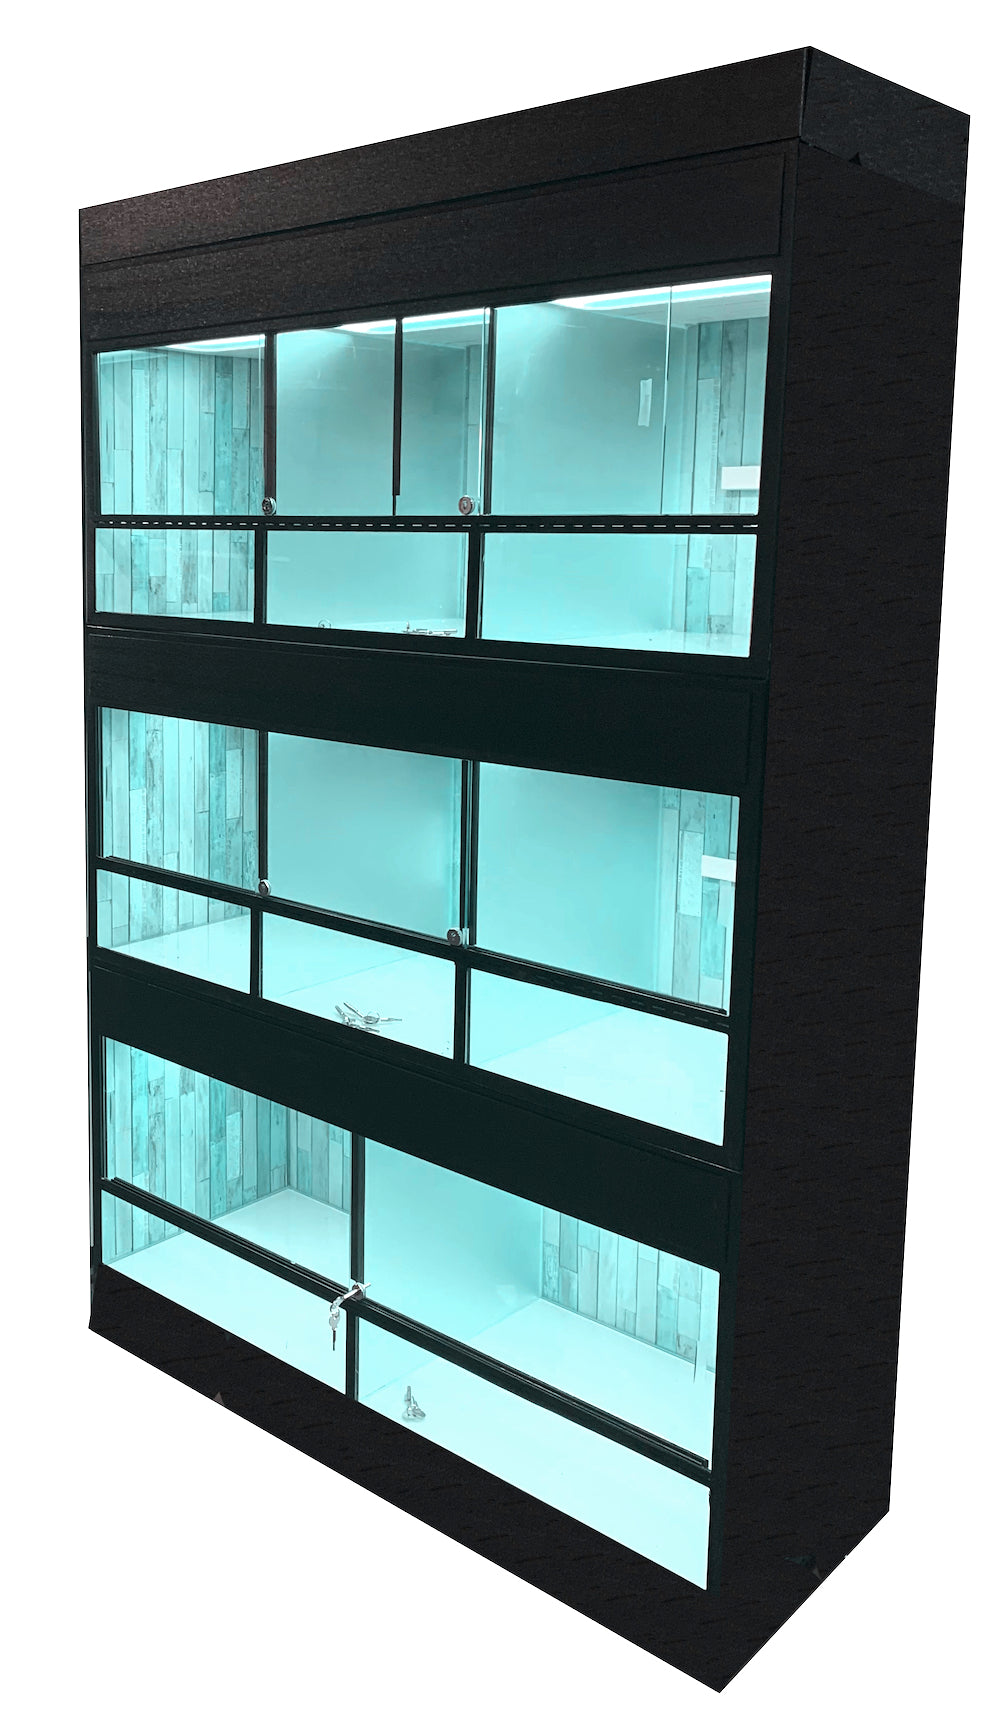 Commercial Critter Display Racks